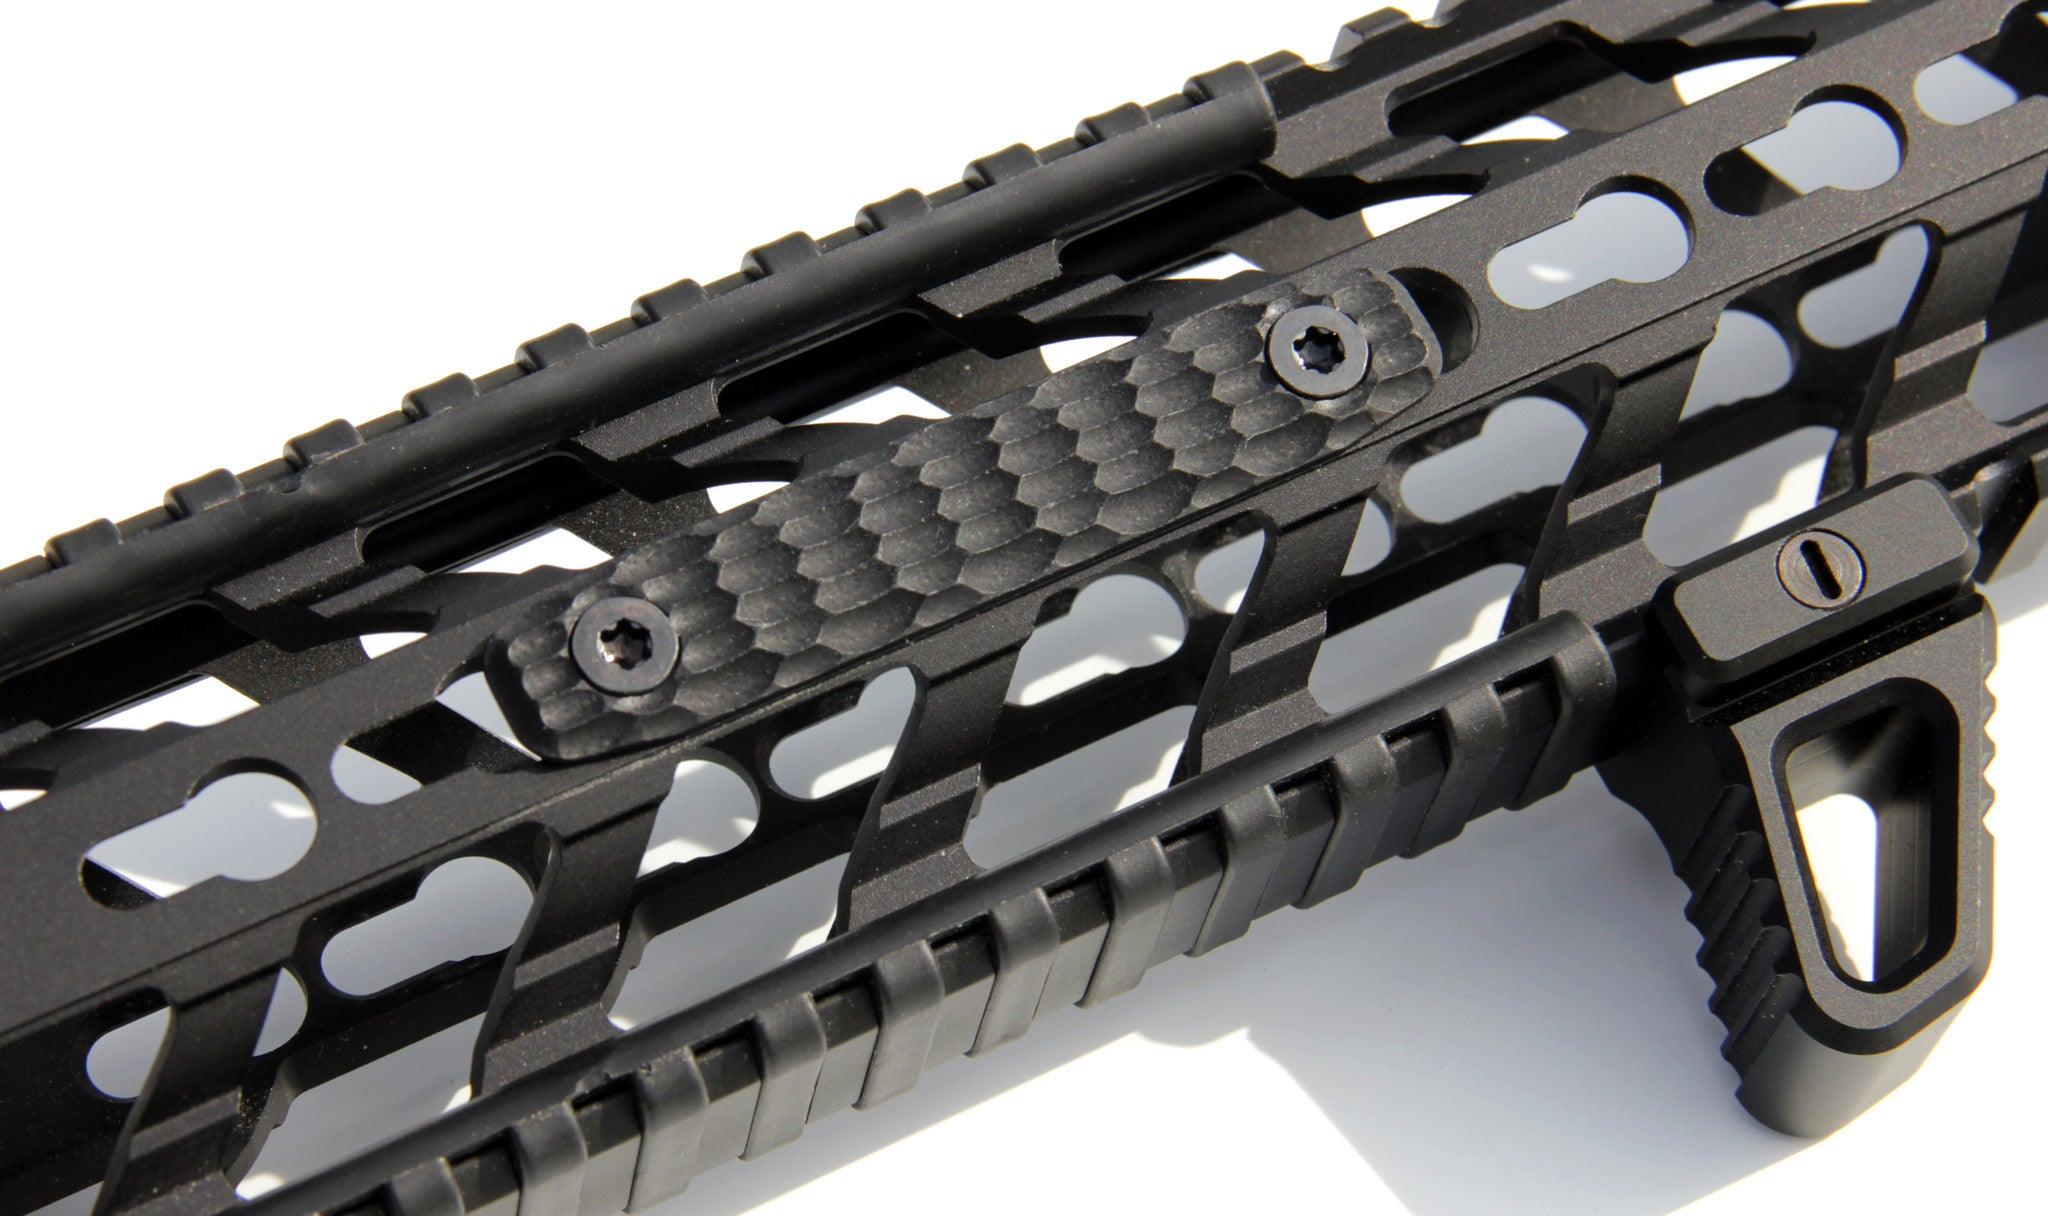 Mechforce G10 Scale Hand Grip Panel, Keymod Rail Handguard Cover, 4 Sl